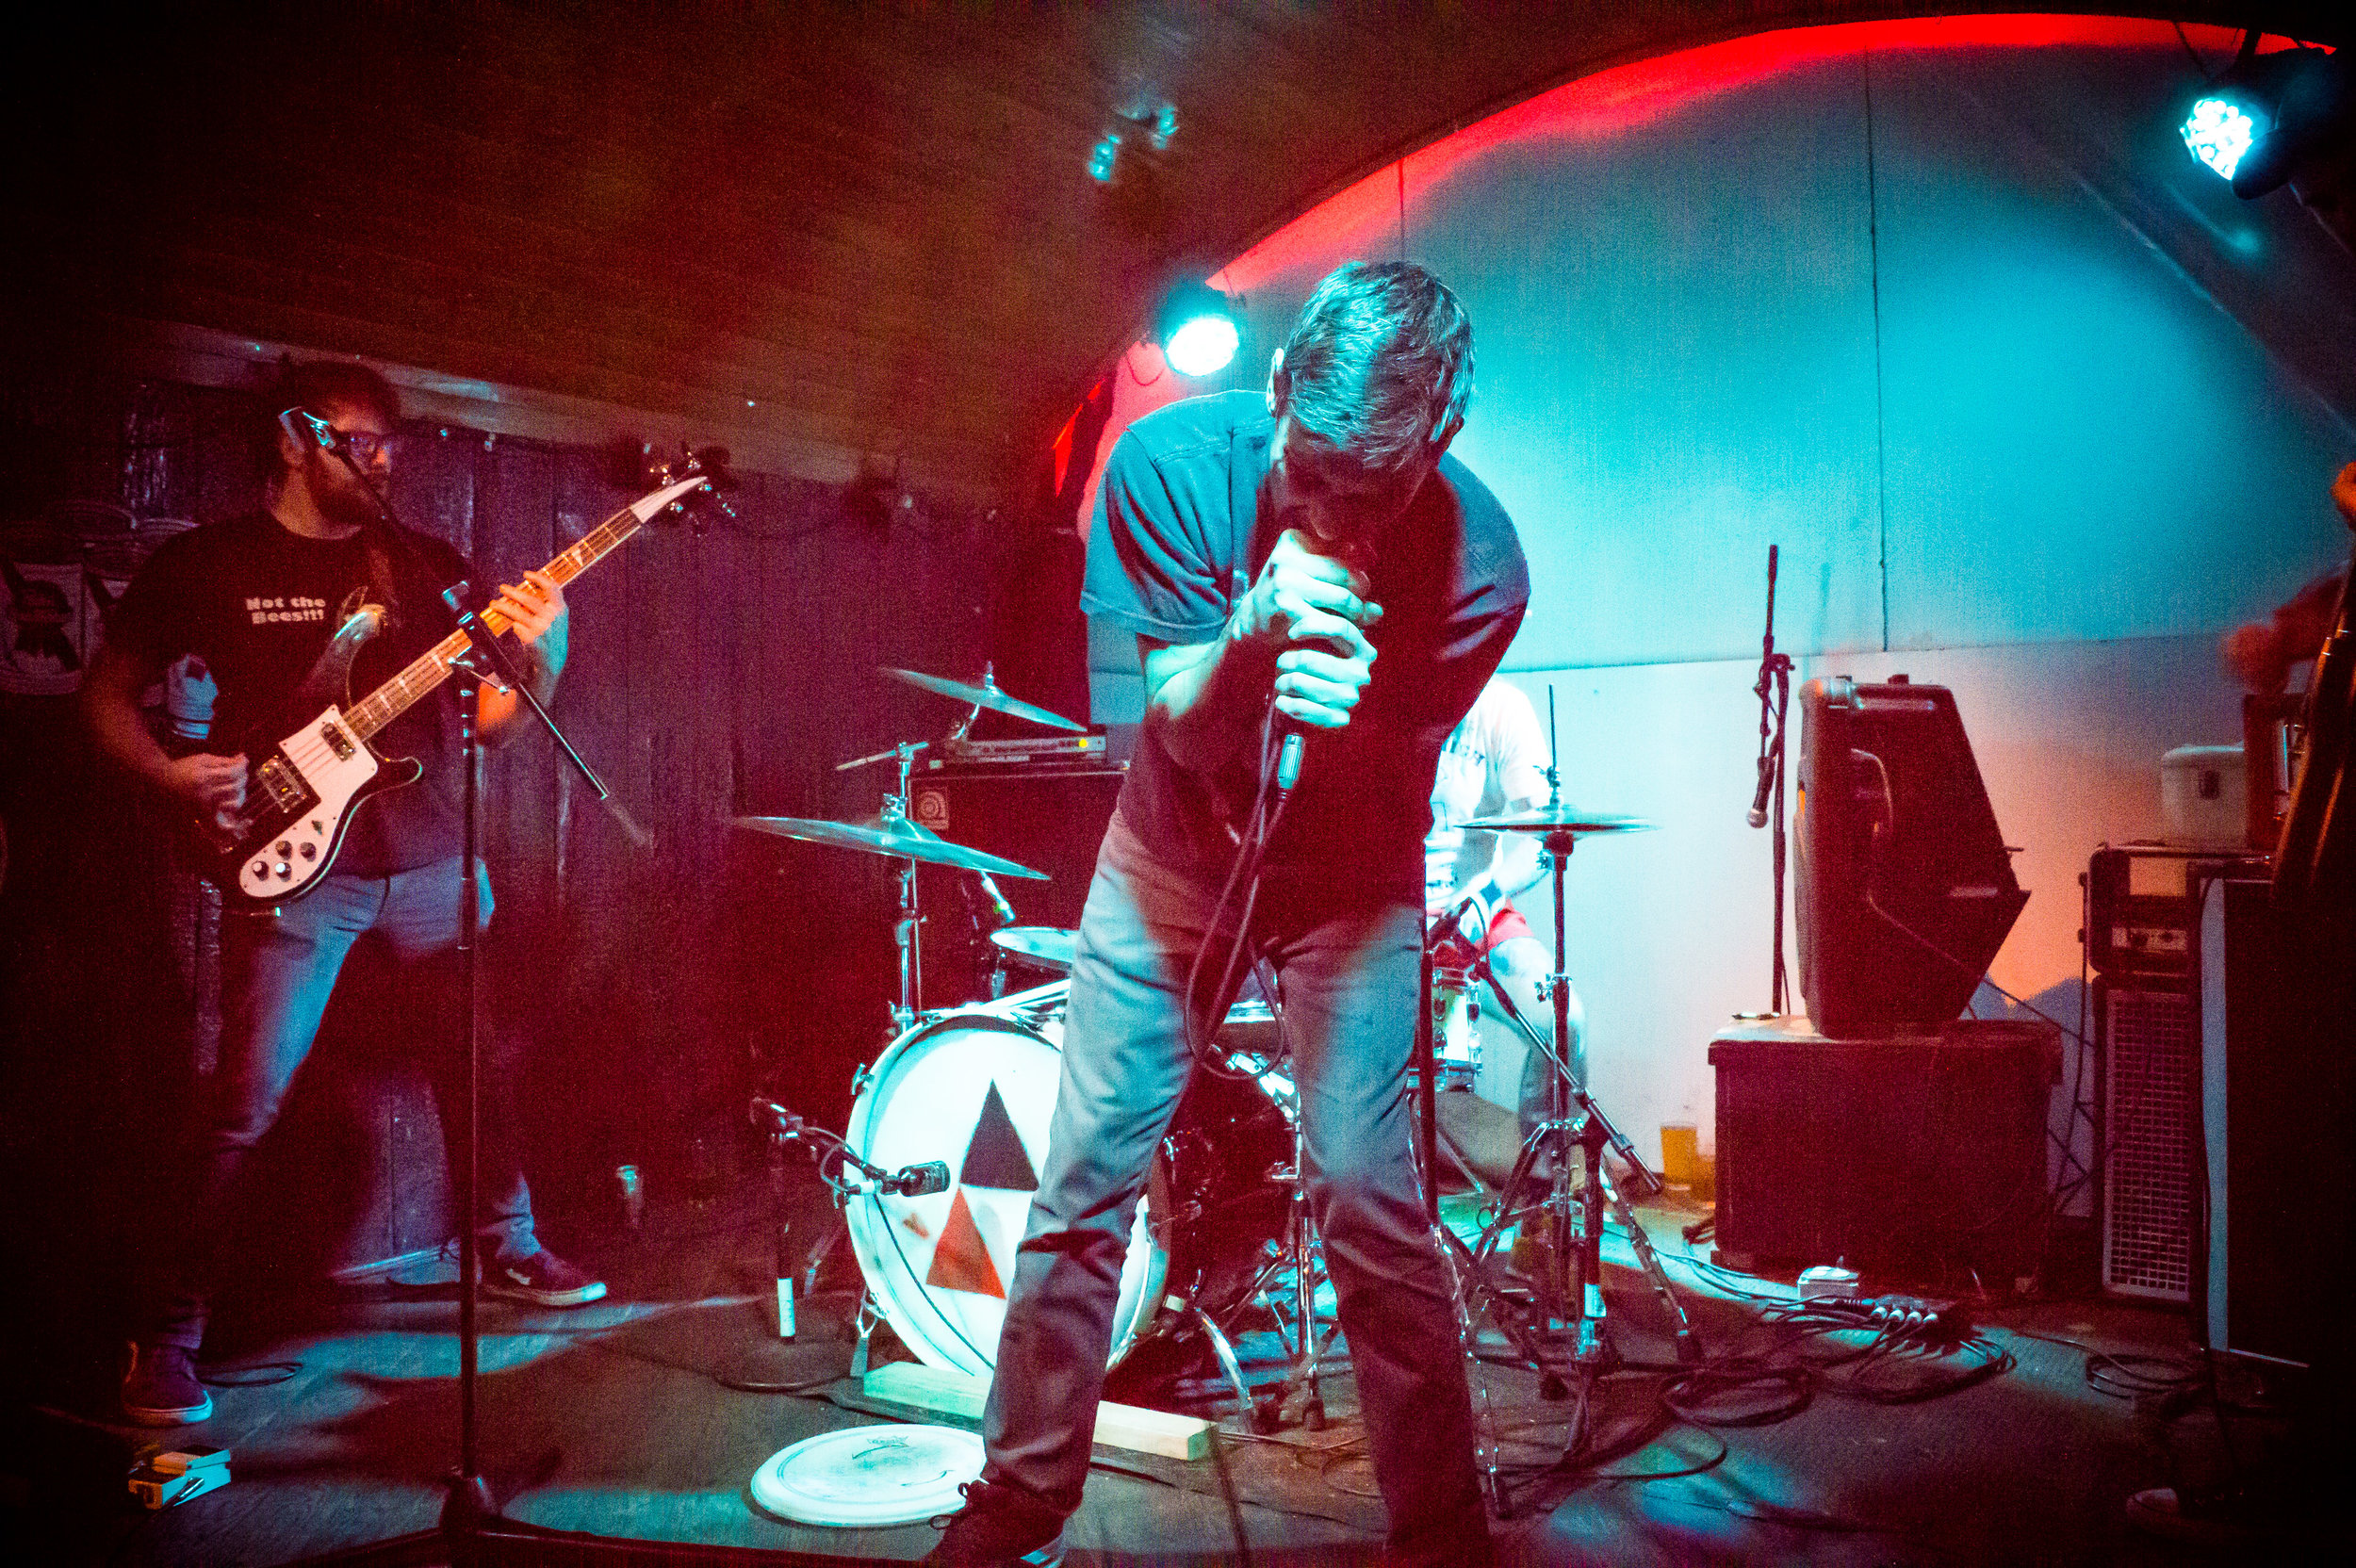 From Creepoid's EP release show at Kung fu Necktie